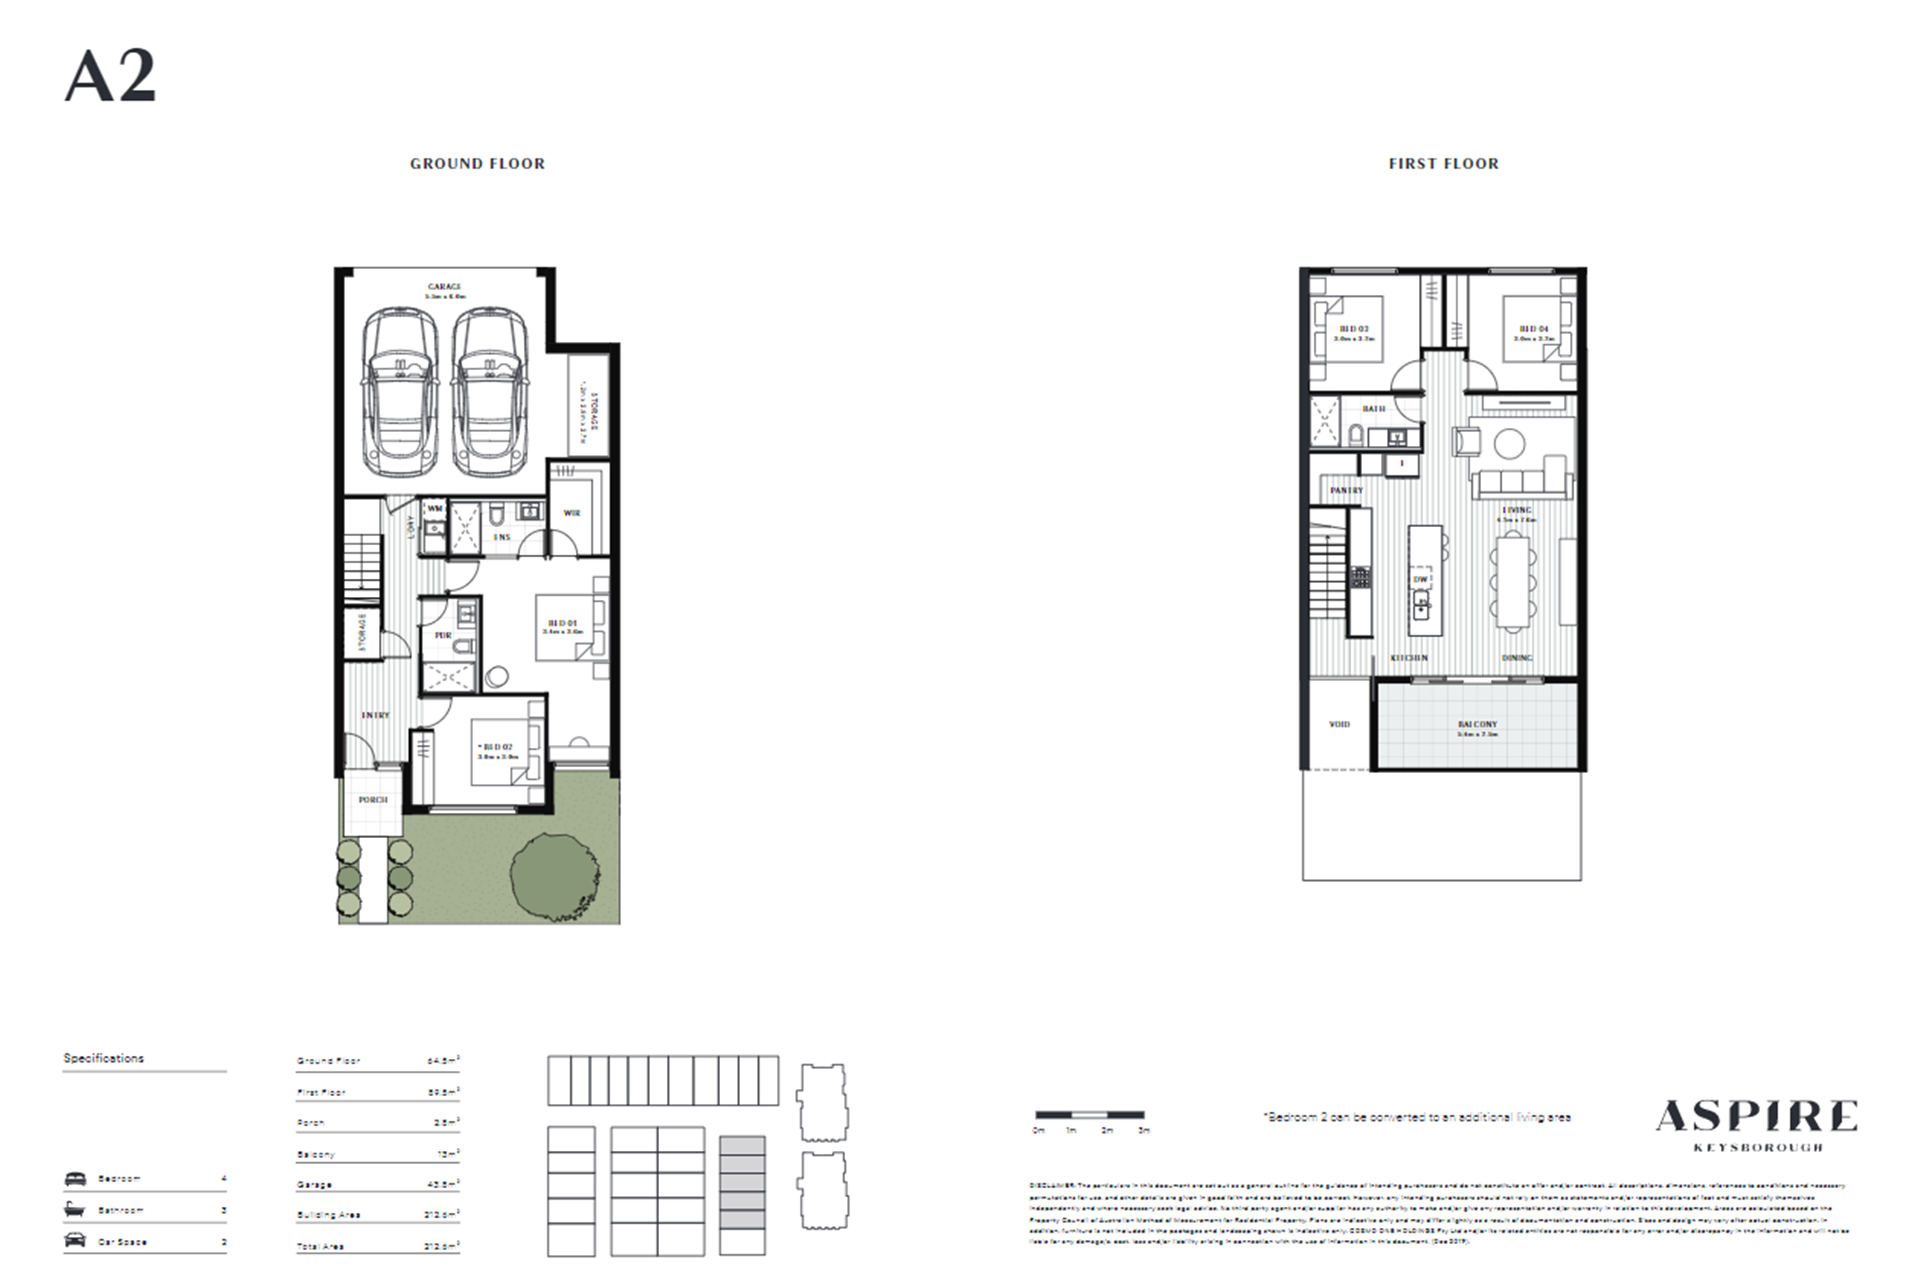 Aspire   A2 Floor Plan (Townhouse)